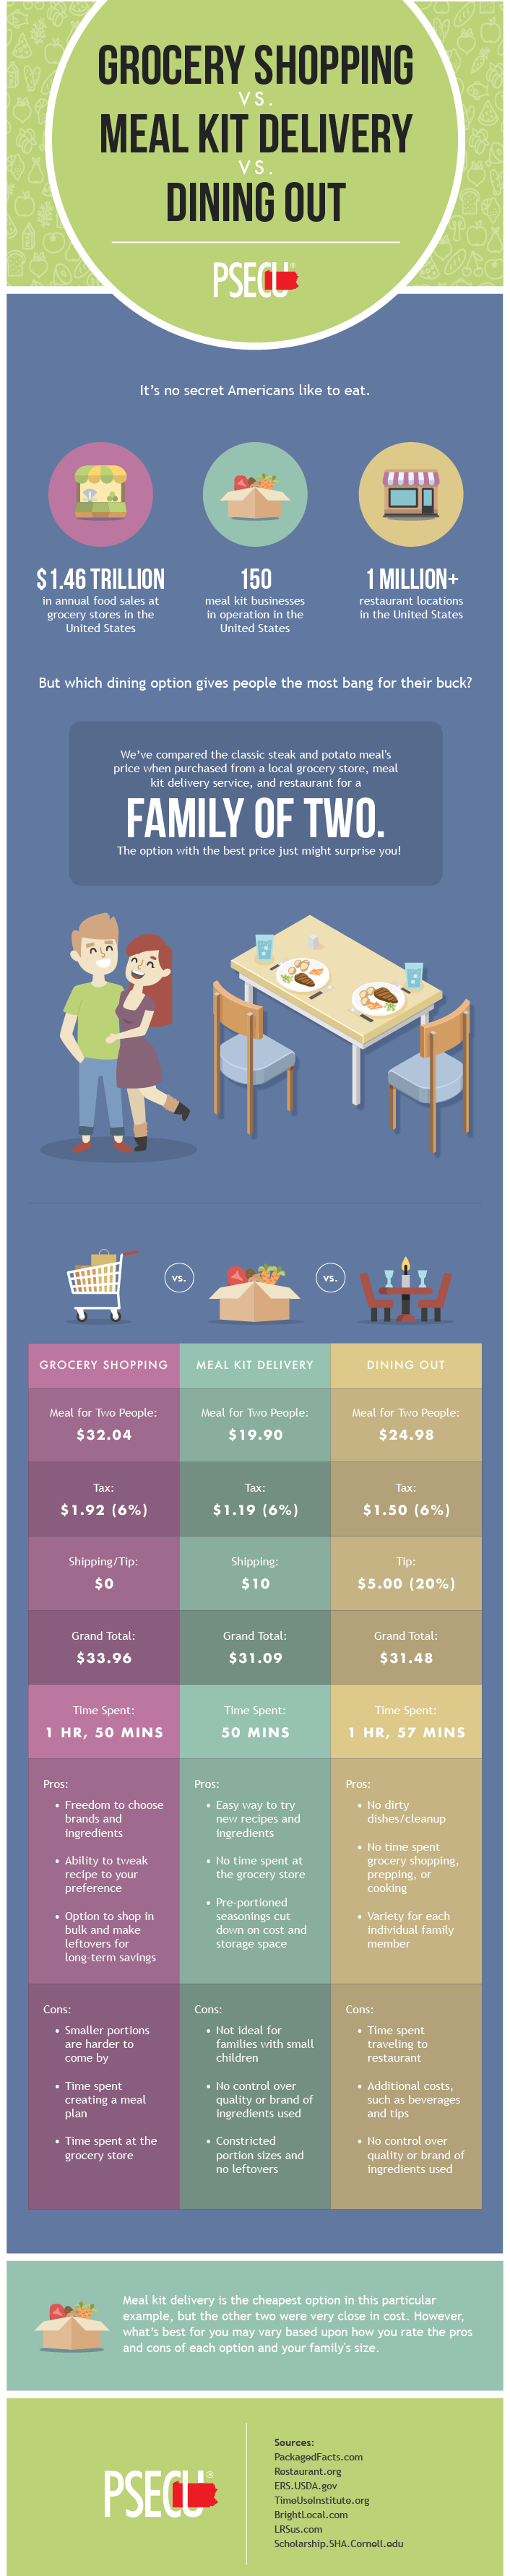 Which is Cheaper: Meal Kits vs Grocery Shopping vs Dining Out